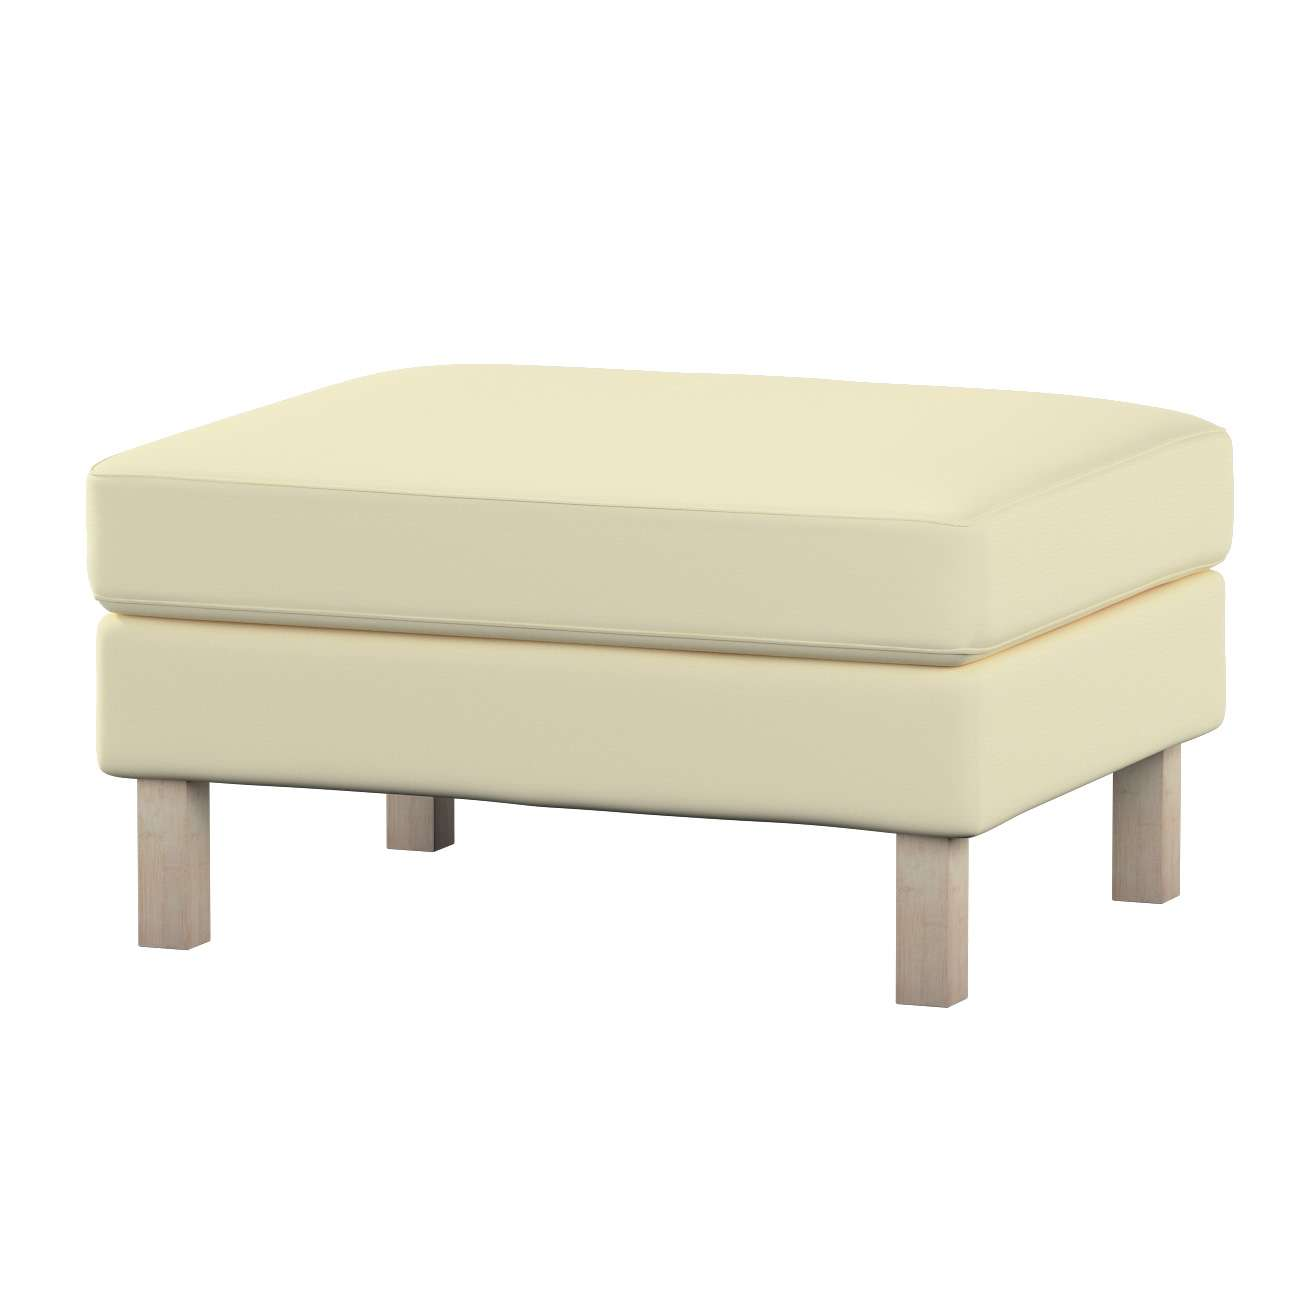 Karlstad footstool cover Karlstad footstool cover in collection Cotton Panama, fabric: 702-29